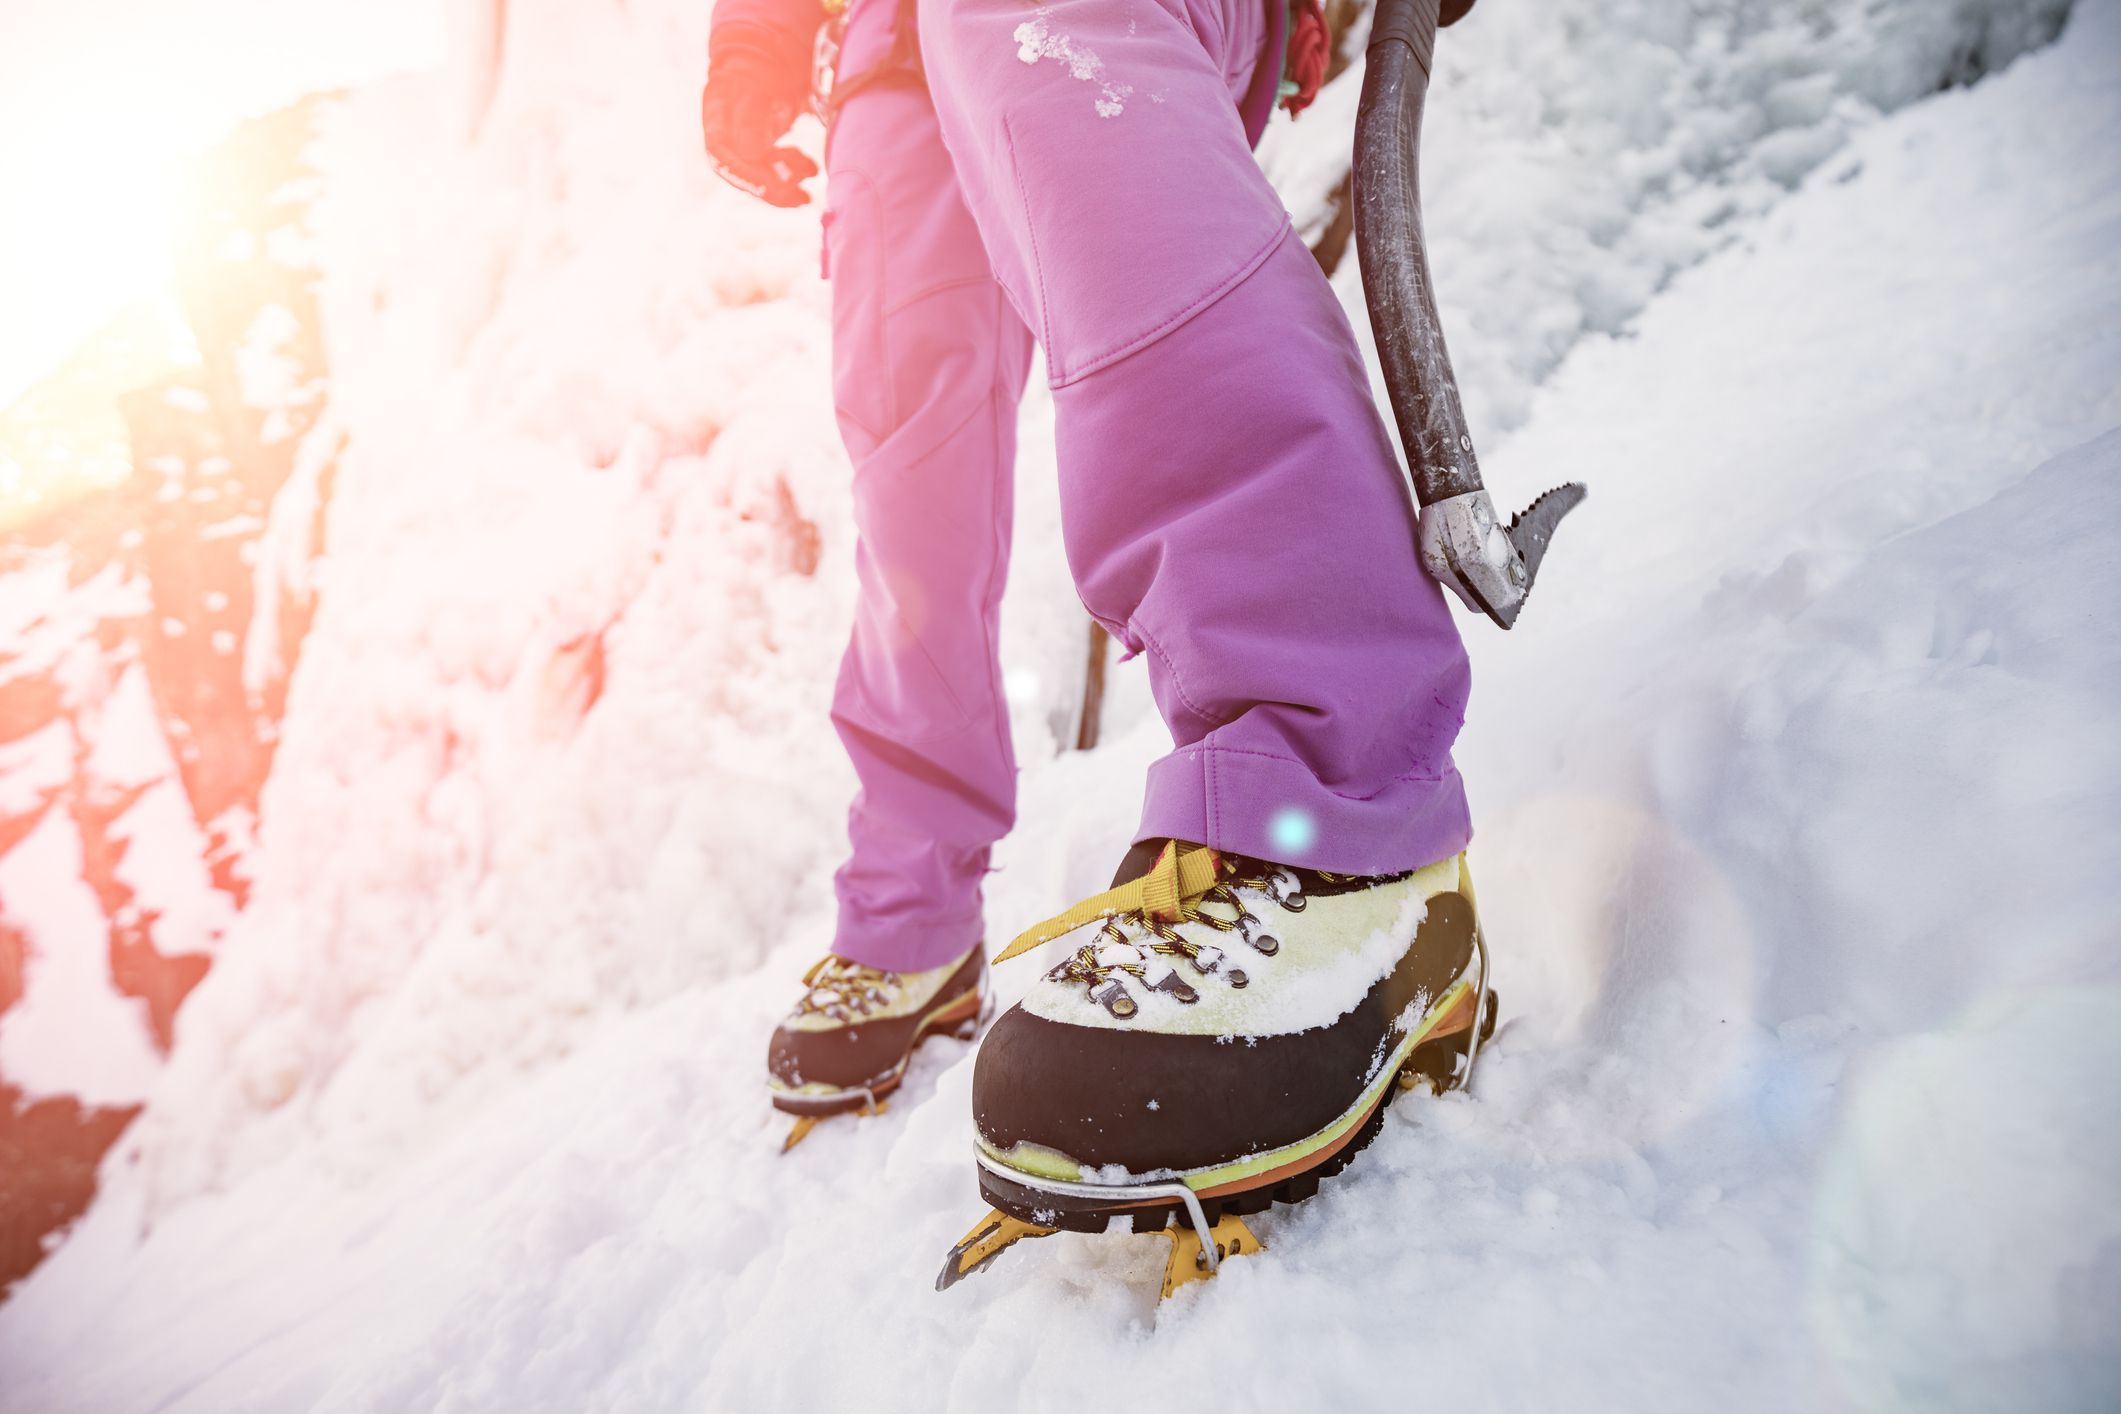 Winter Ice Snow Anti Slip Spikes Grips Grippers Crampon Cleats For Shoes Boots